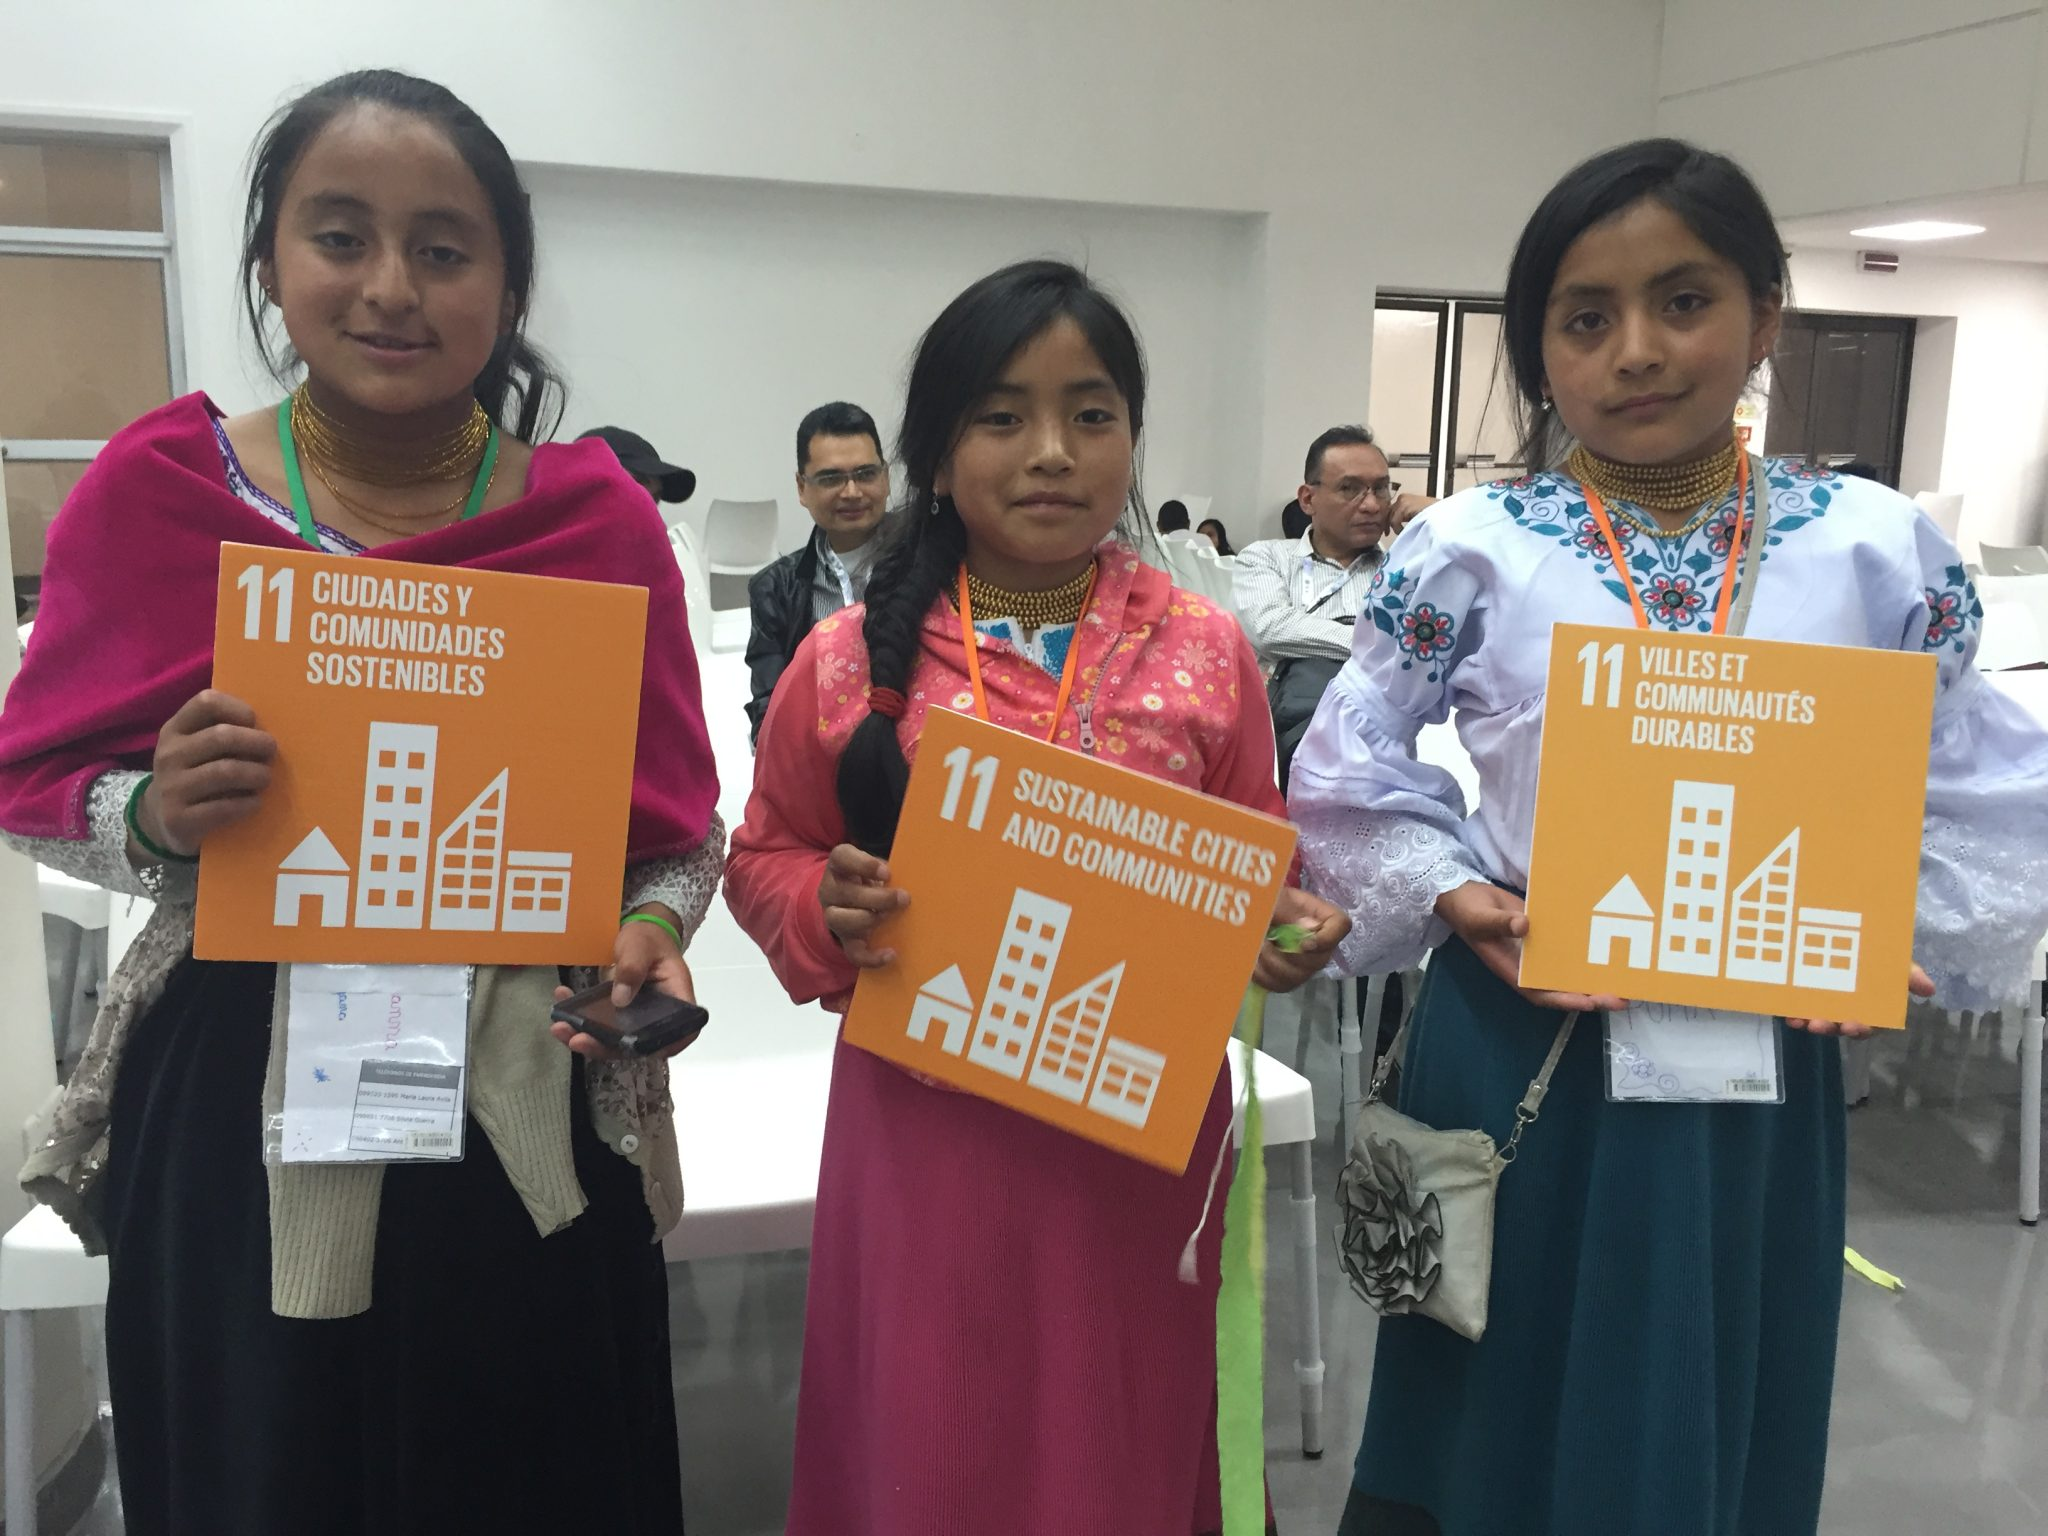 Photo: Girls from Ecuador attend a Q-and-A with UN-Habitat Executive Director Joan Clos at the Habitat 3 conference in Quito.